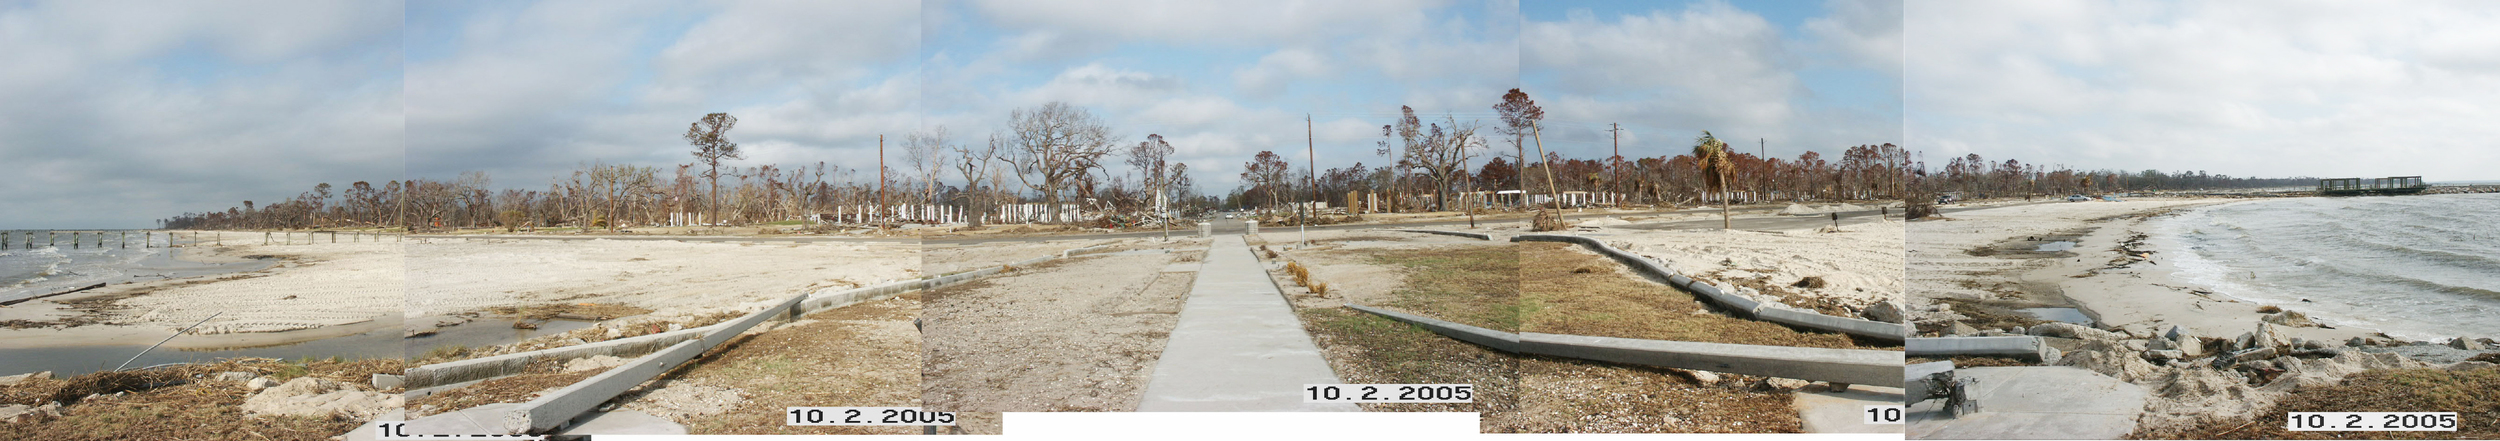 Waveland_Mississippi.Form_Base_Code_Implimentation.Walkable.Hurricane_Katrina_Relief.Robert_Orr_&_Associates.Architecture.Landscape_Architecture.New_Urbanism.Coleman_Panorama.jpg